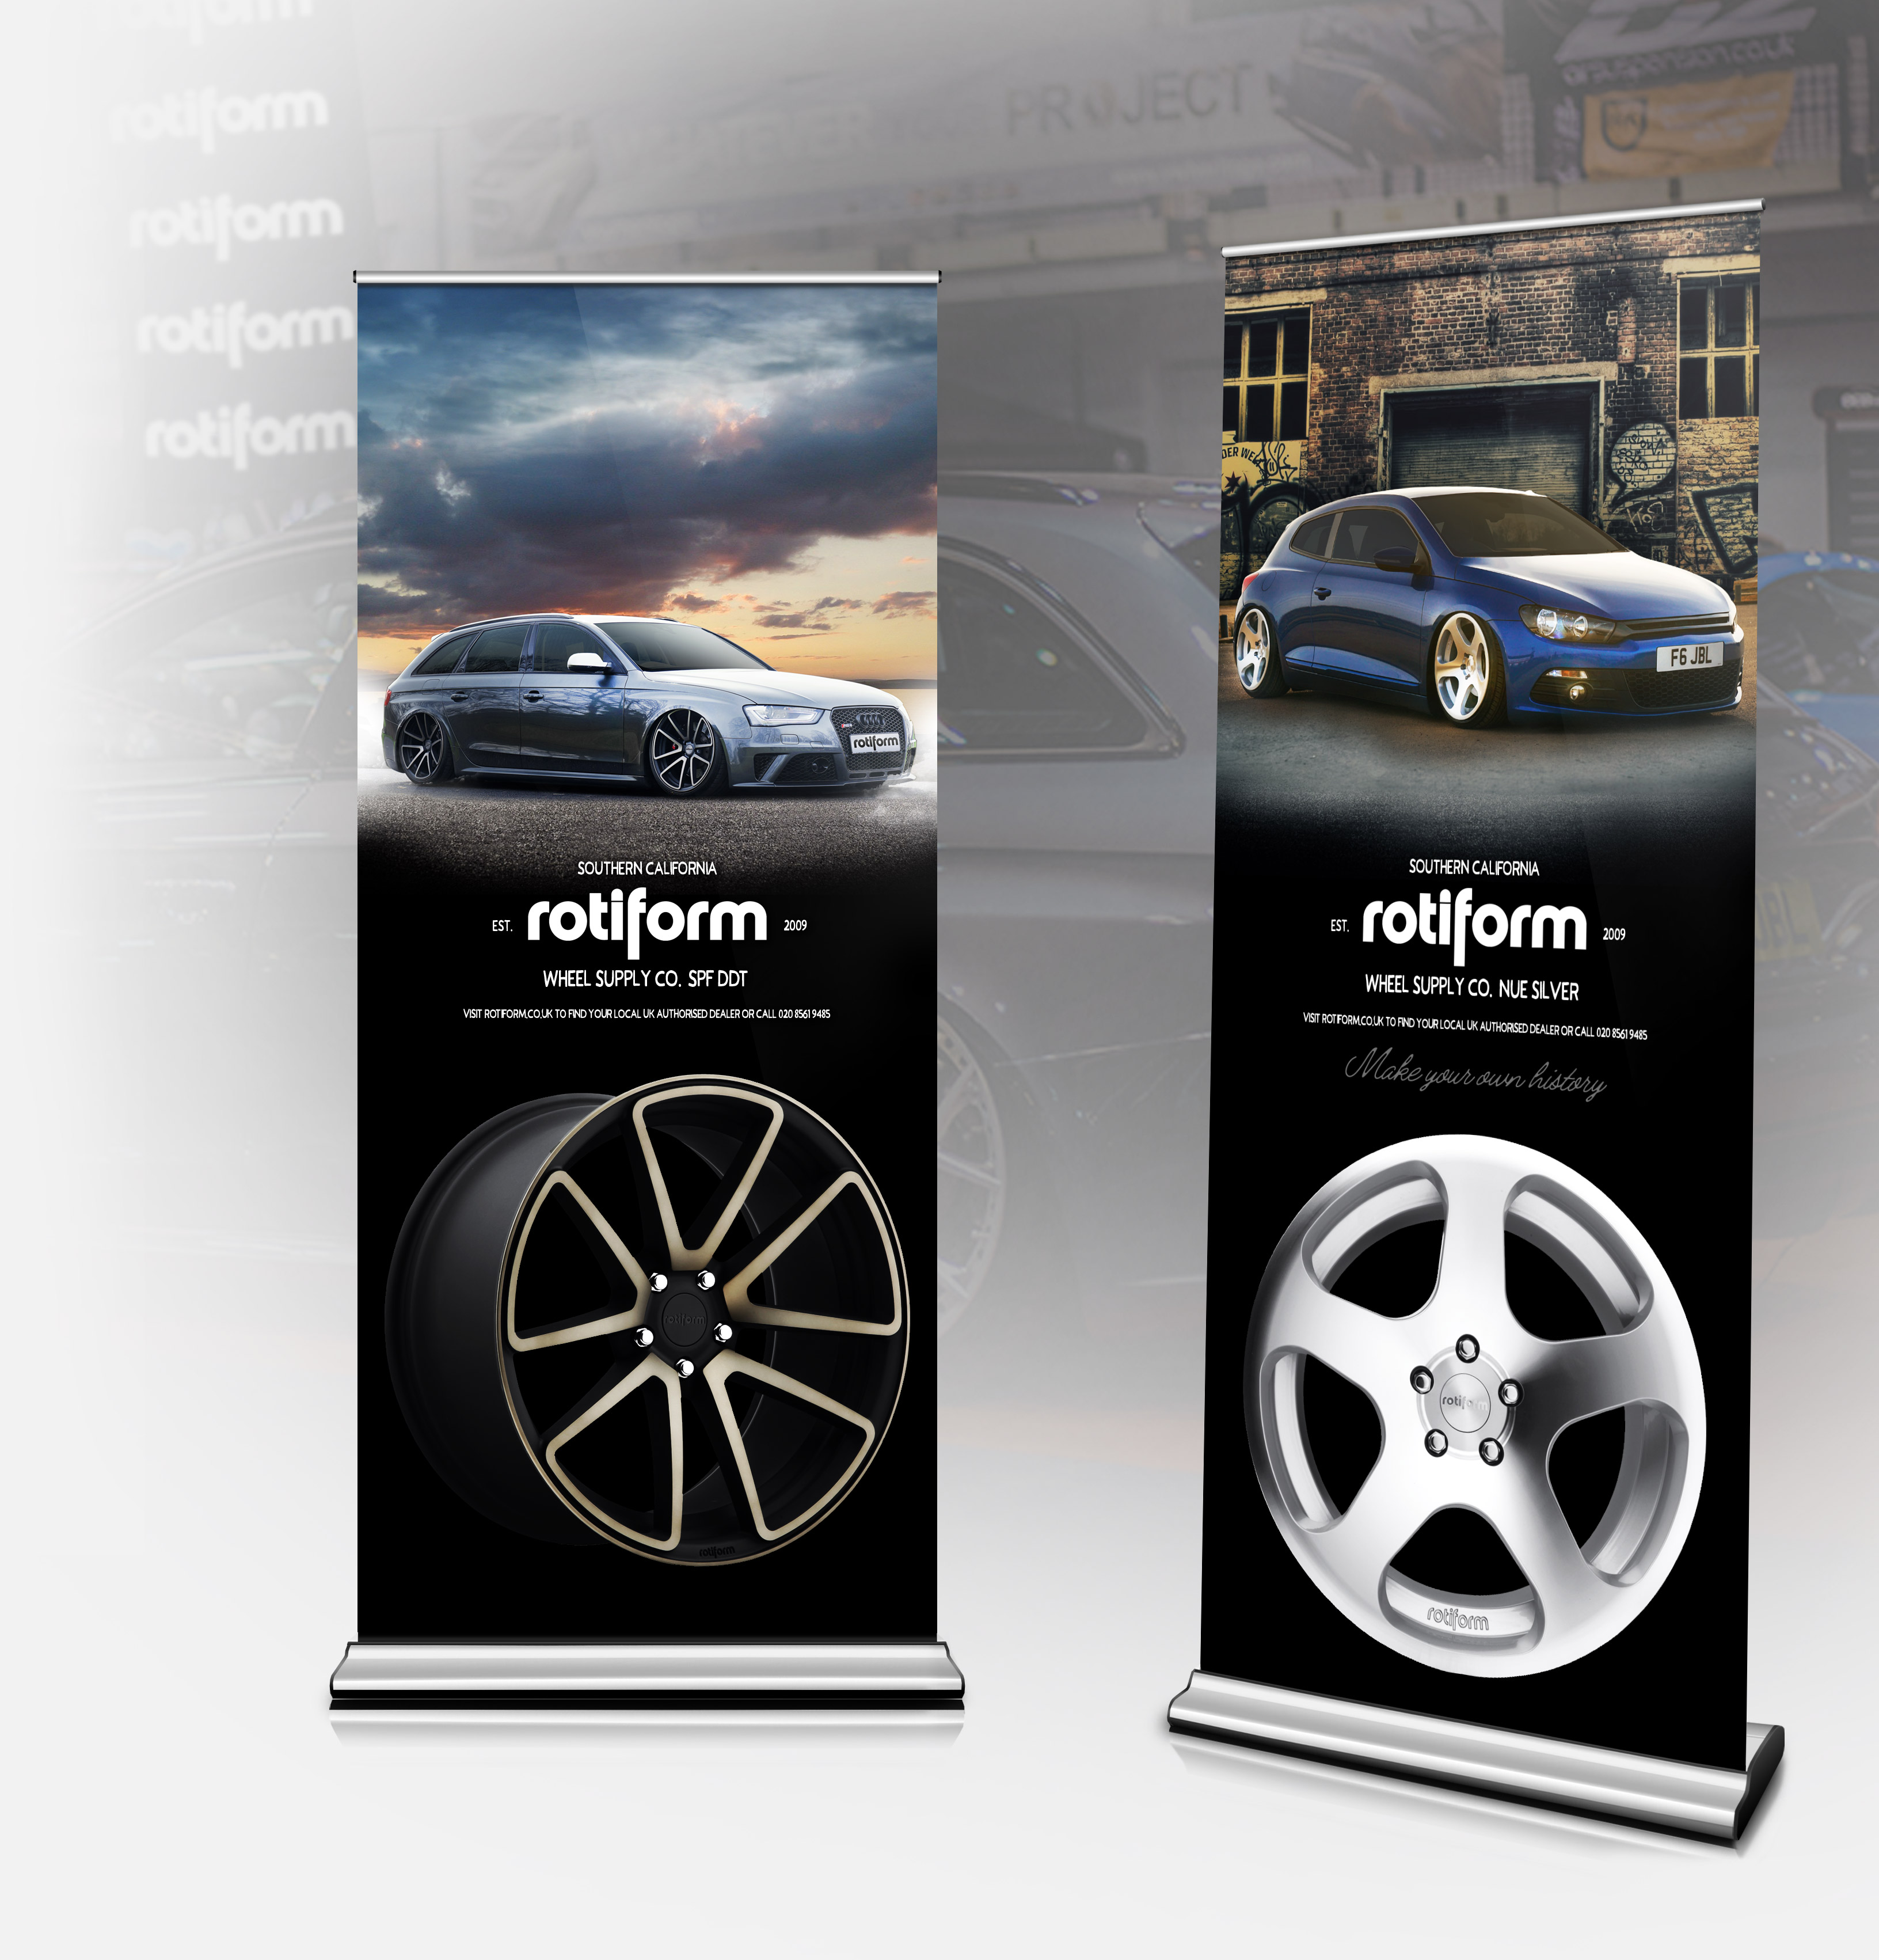 event promotional materials